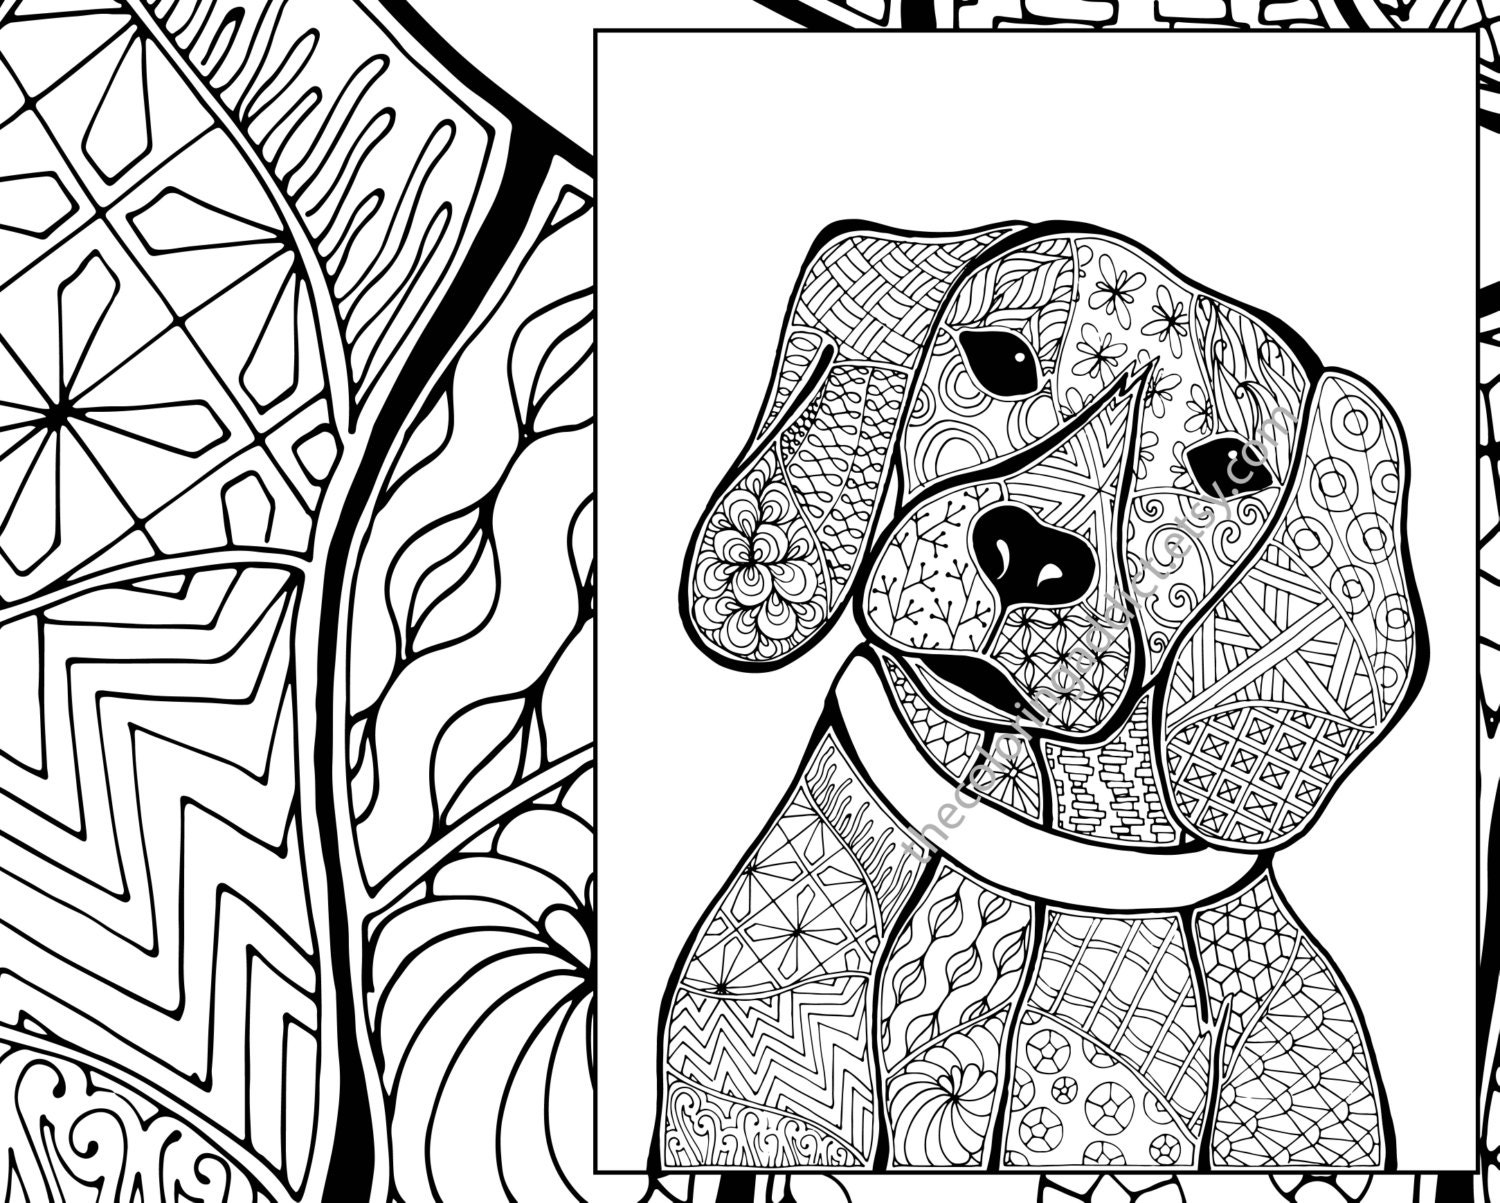 dog coloring pages pdf | zentangle dog colouring page animal colouring zentangle | Etsy